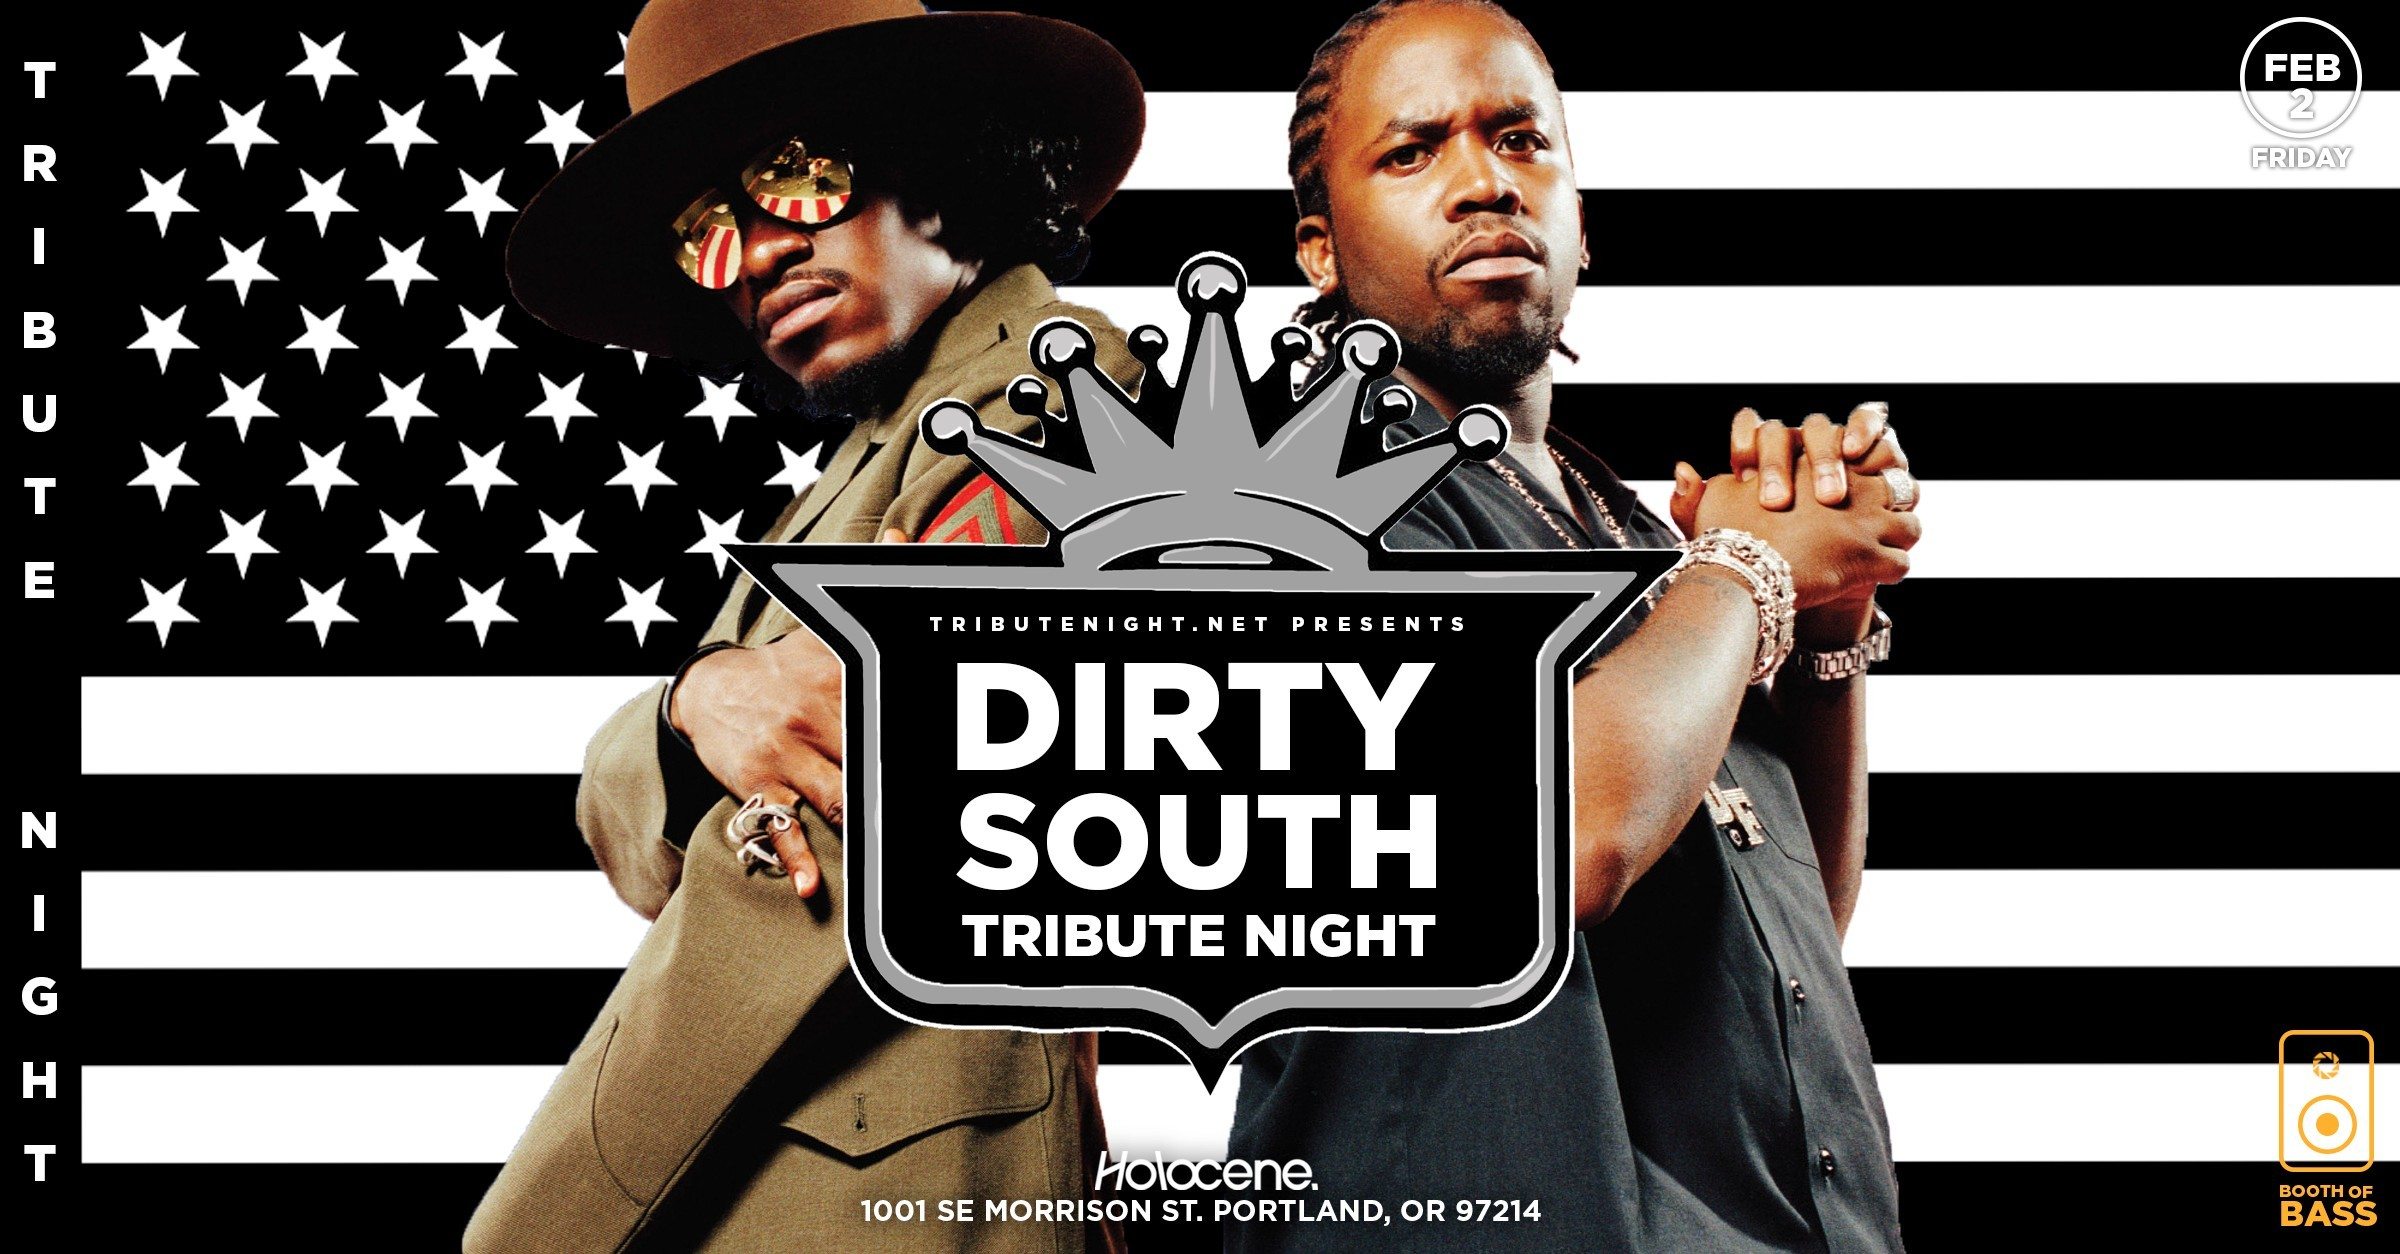 What Yall Know About The Dirrrty Souuuuth Huh Well If You Dont Know Shit Tonights Tribute Night Is Gonna Be A Crash Course In Crunk